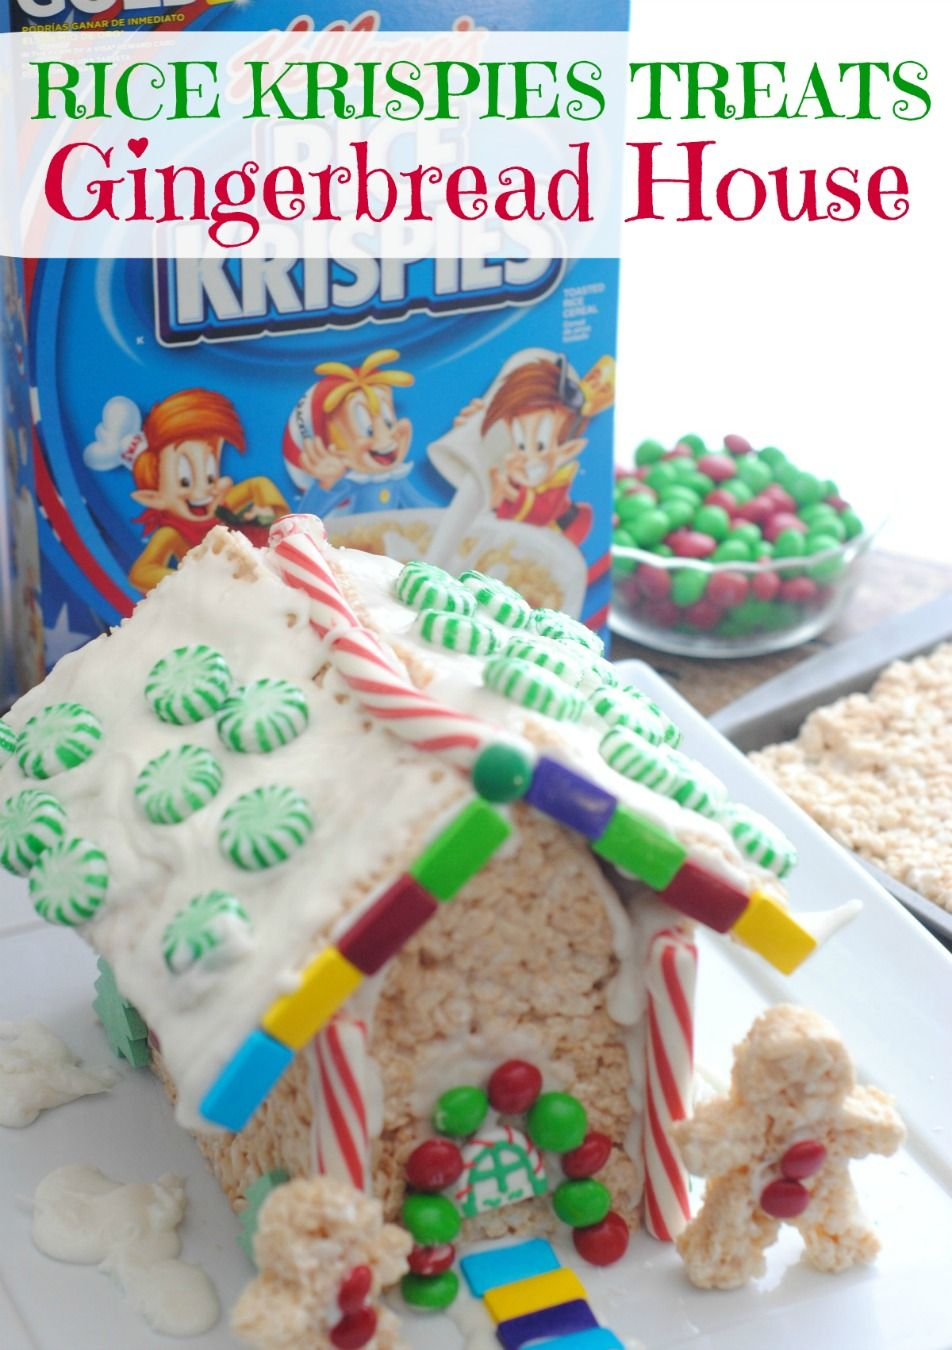 Rice Crispy Treat Christmas.Kellogg S Rice Krispie Treat Gingerbread House